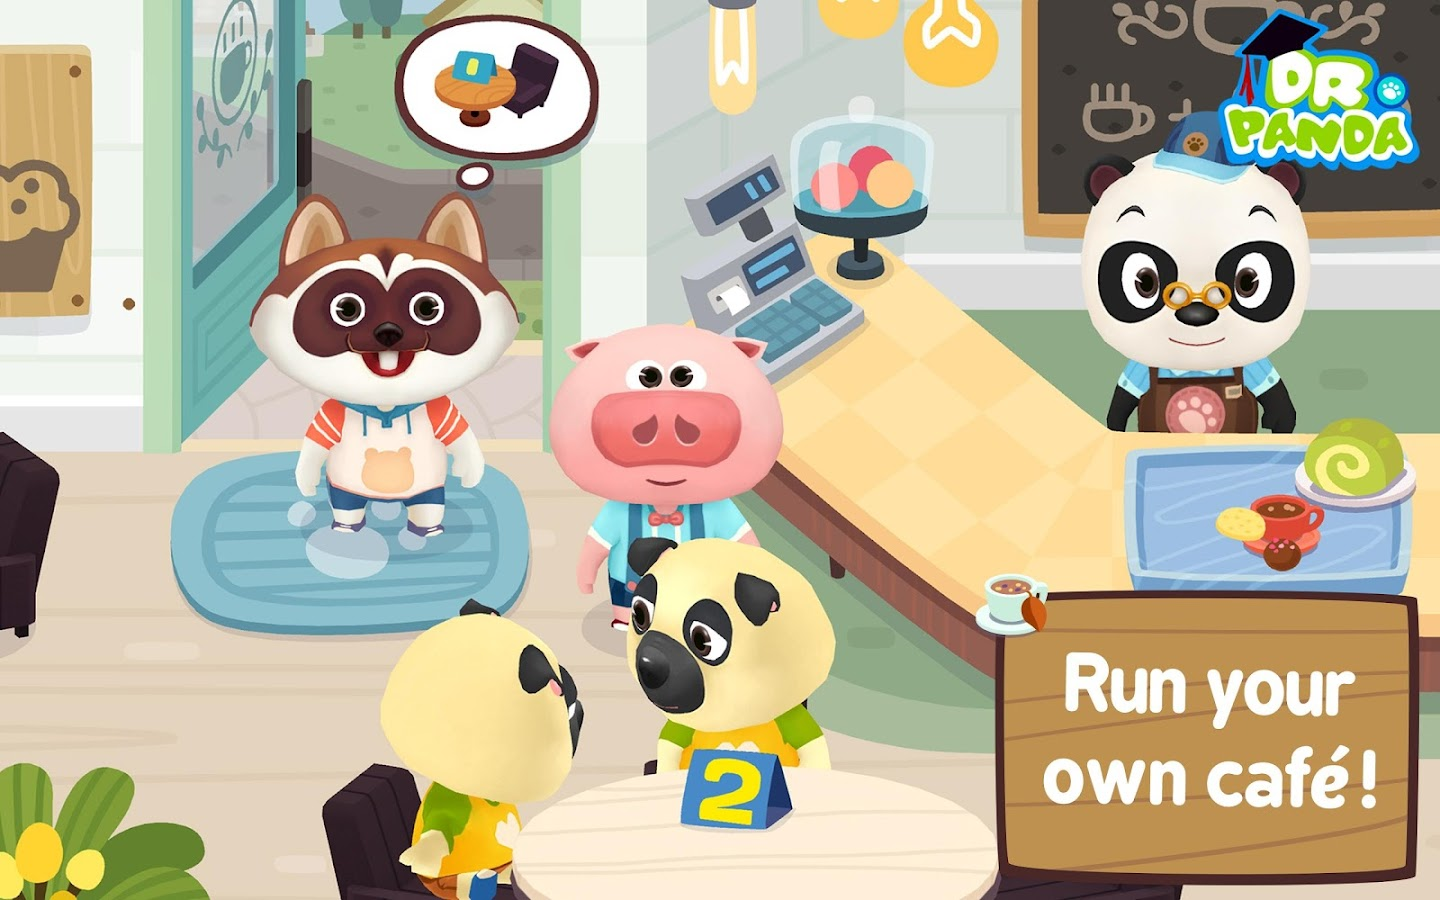 Dr Panda Café Freemium 1 01 APK Download Android